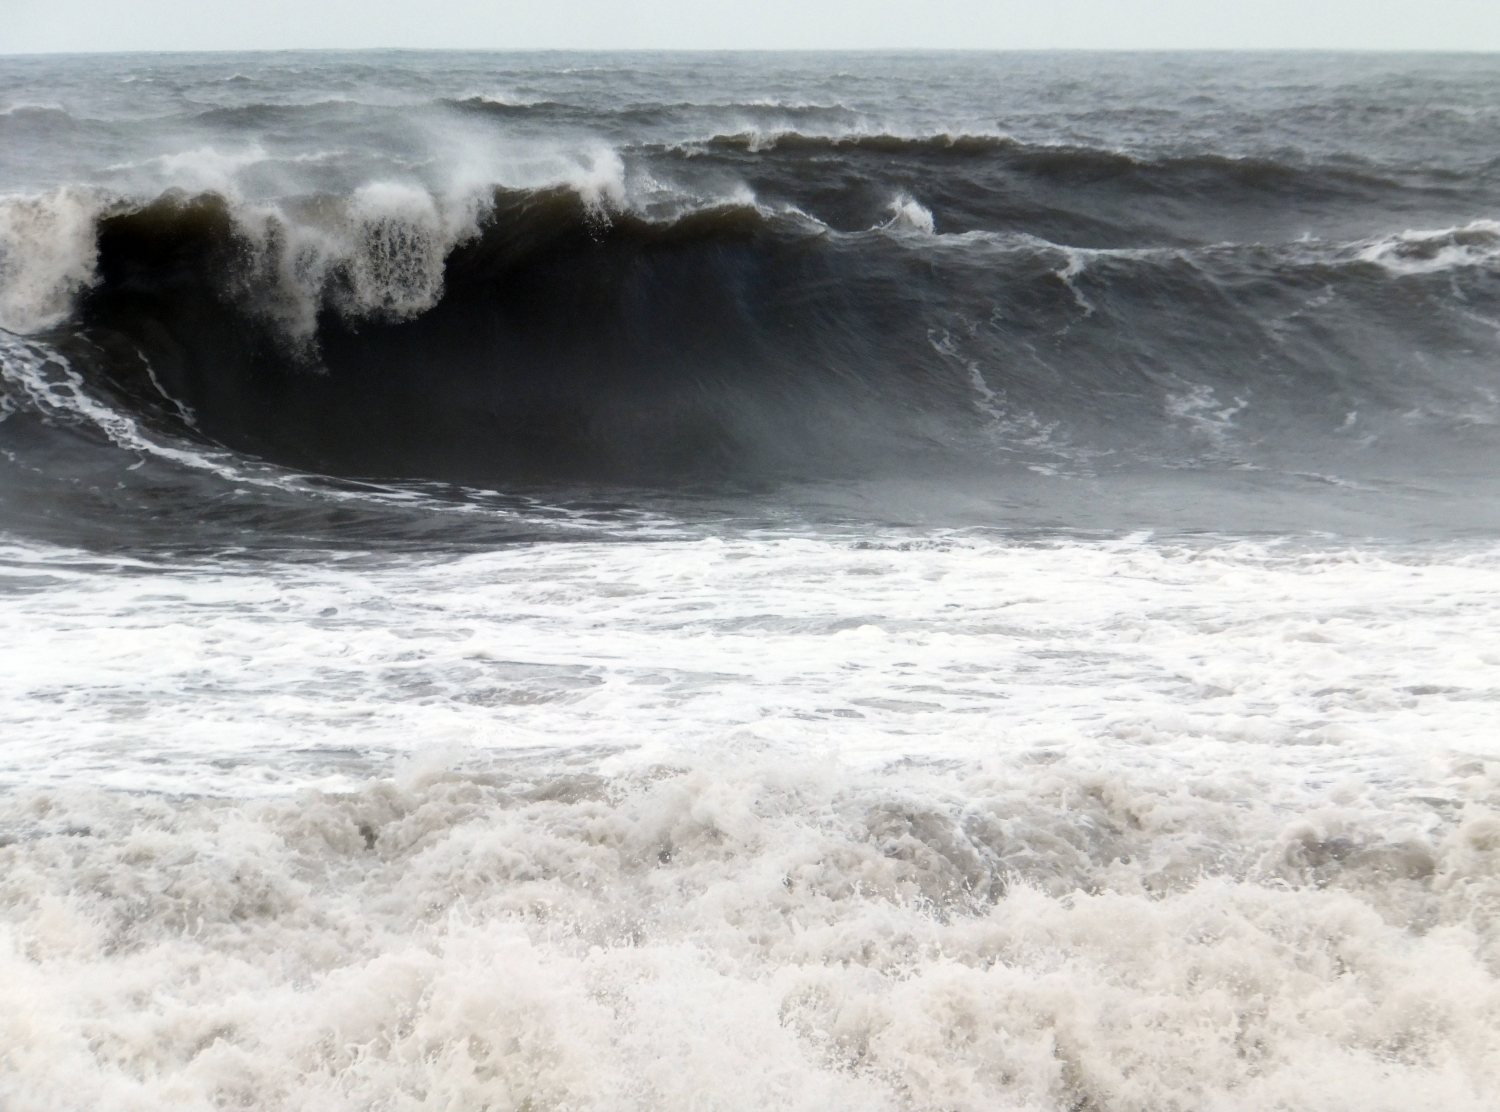 Photo of the sea with a large wave at North Berwic